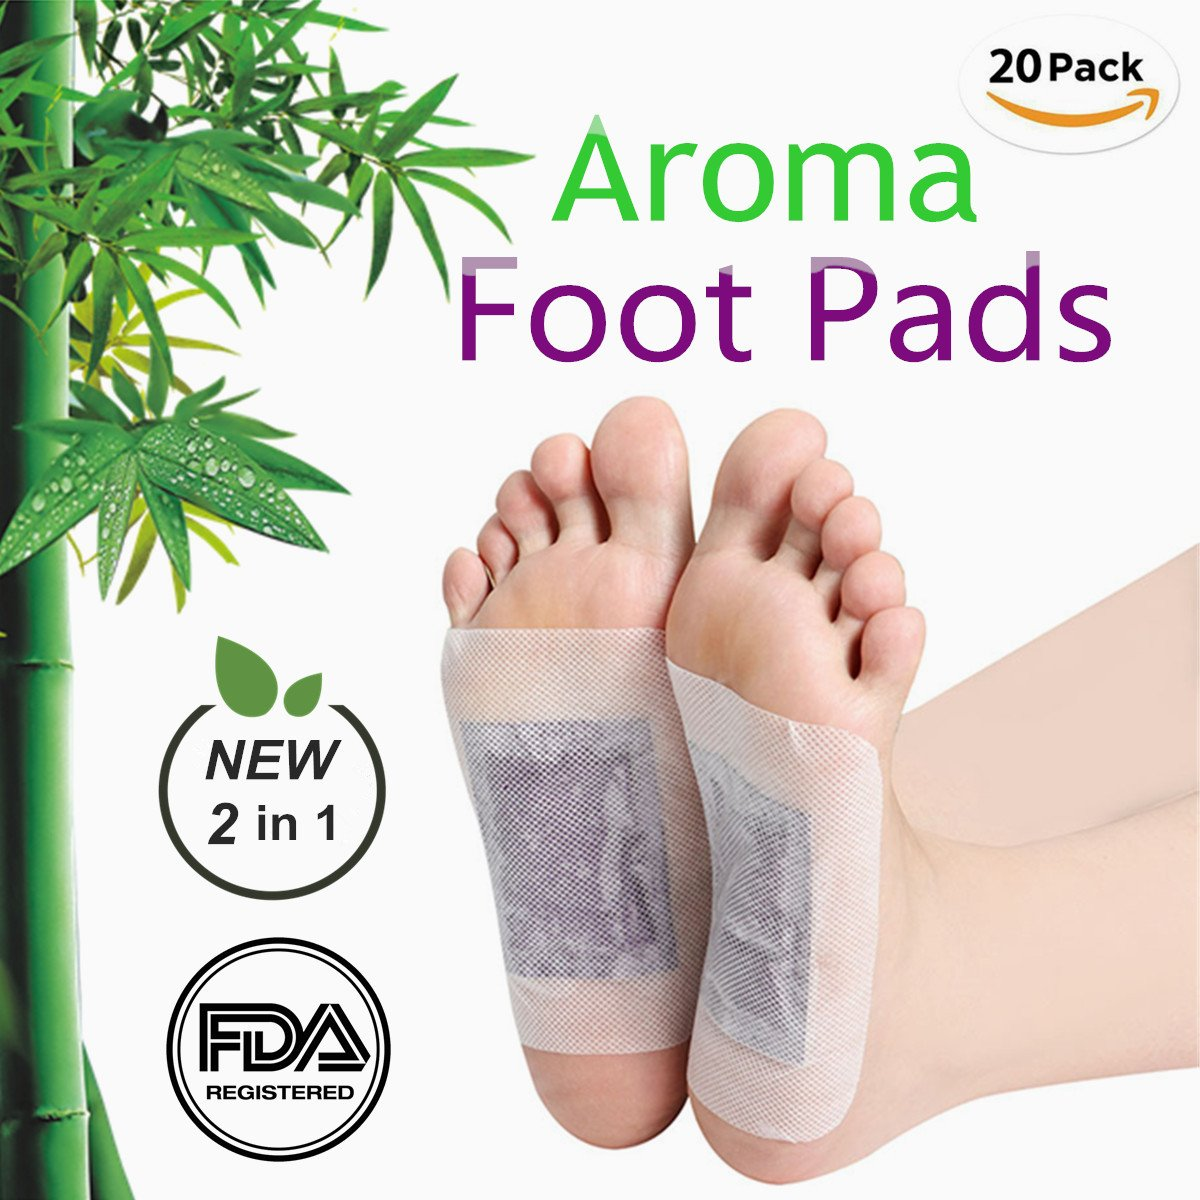 Foot Pads, 20 Pcs Foot Care Relaxing Sheet for Foot Health 2018 New Upgraded 2 in 1 FDA Certified by JaBoMay